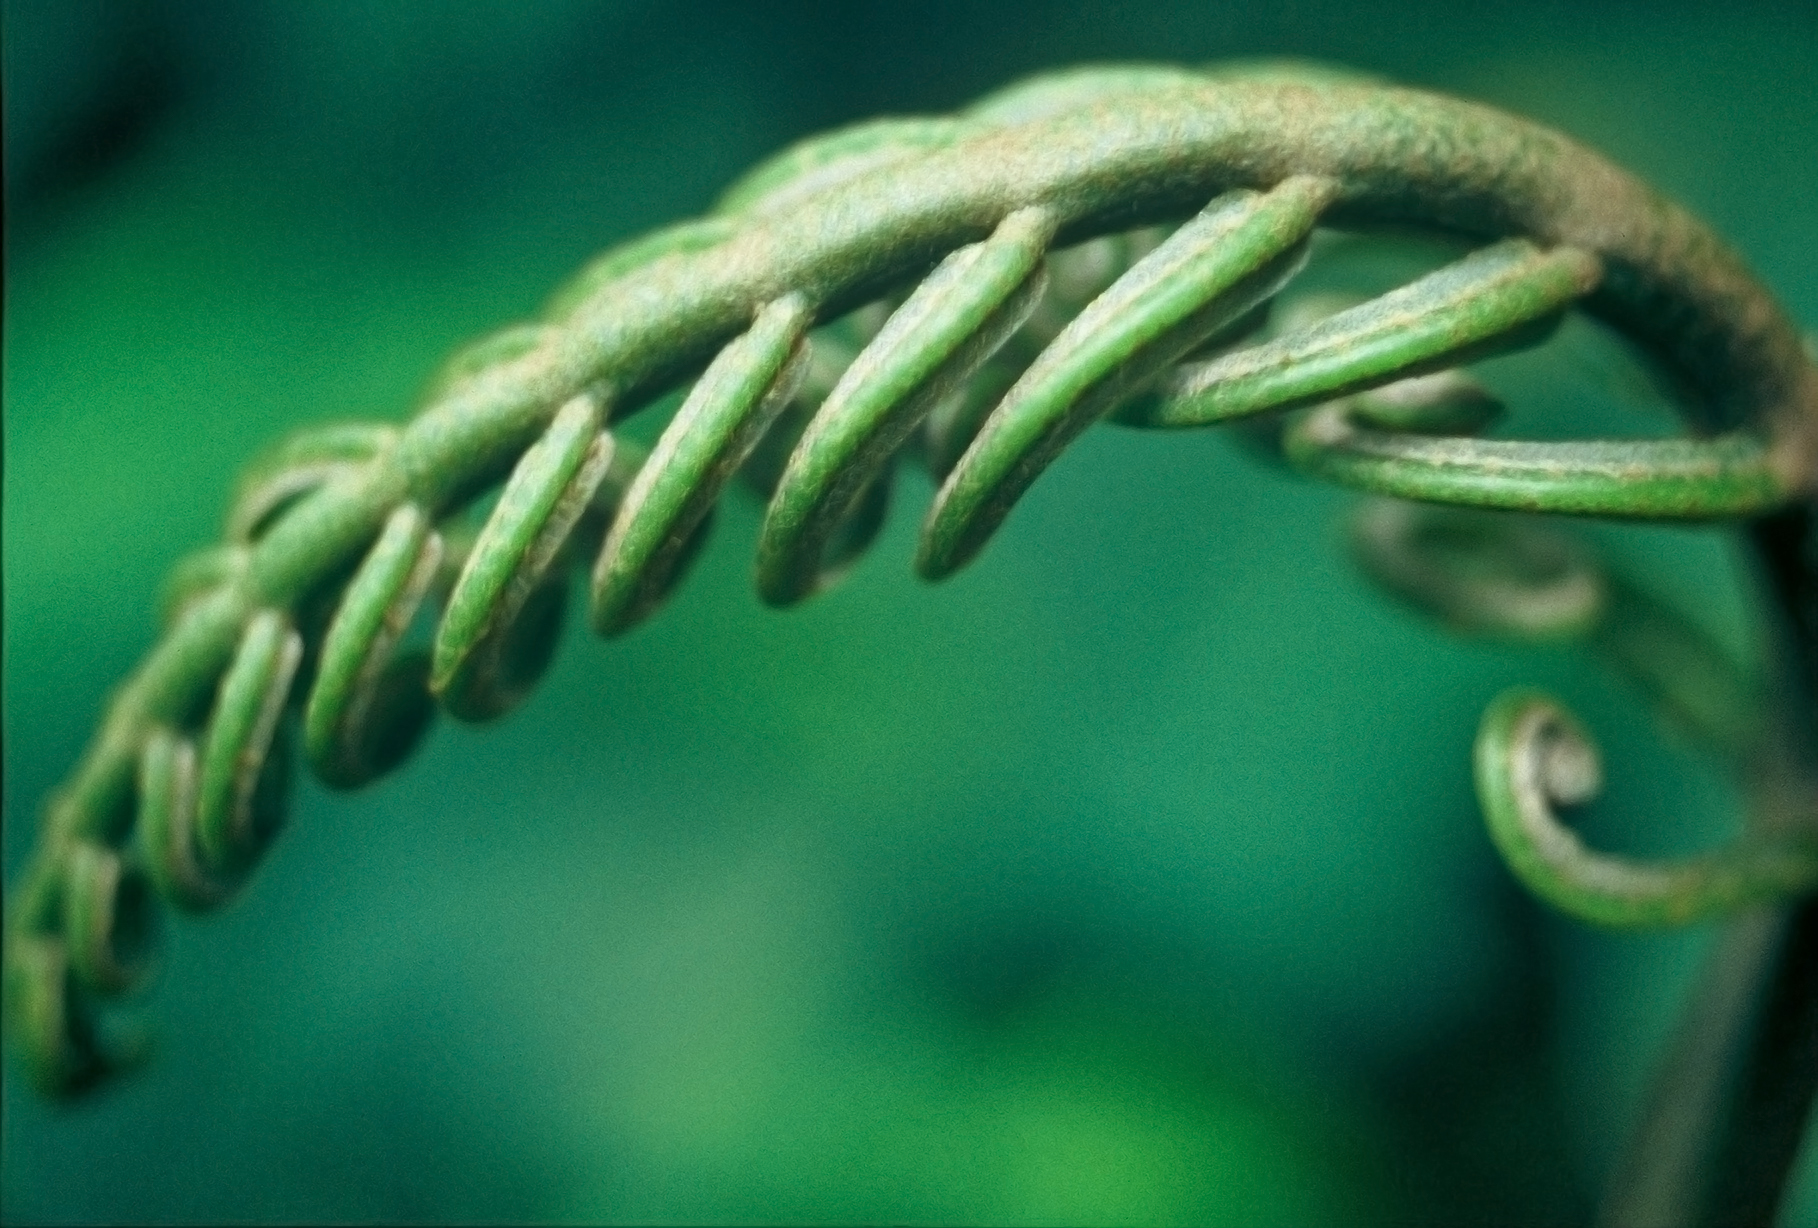 FERN SPROUT